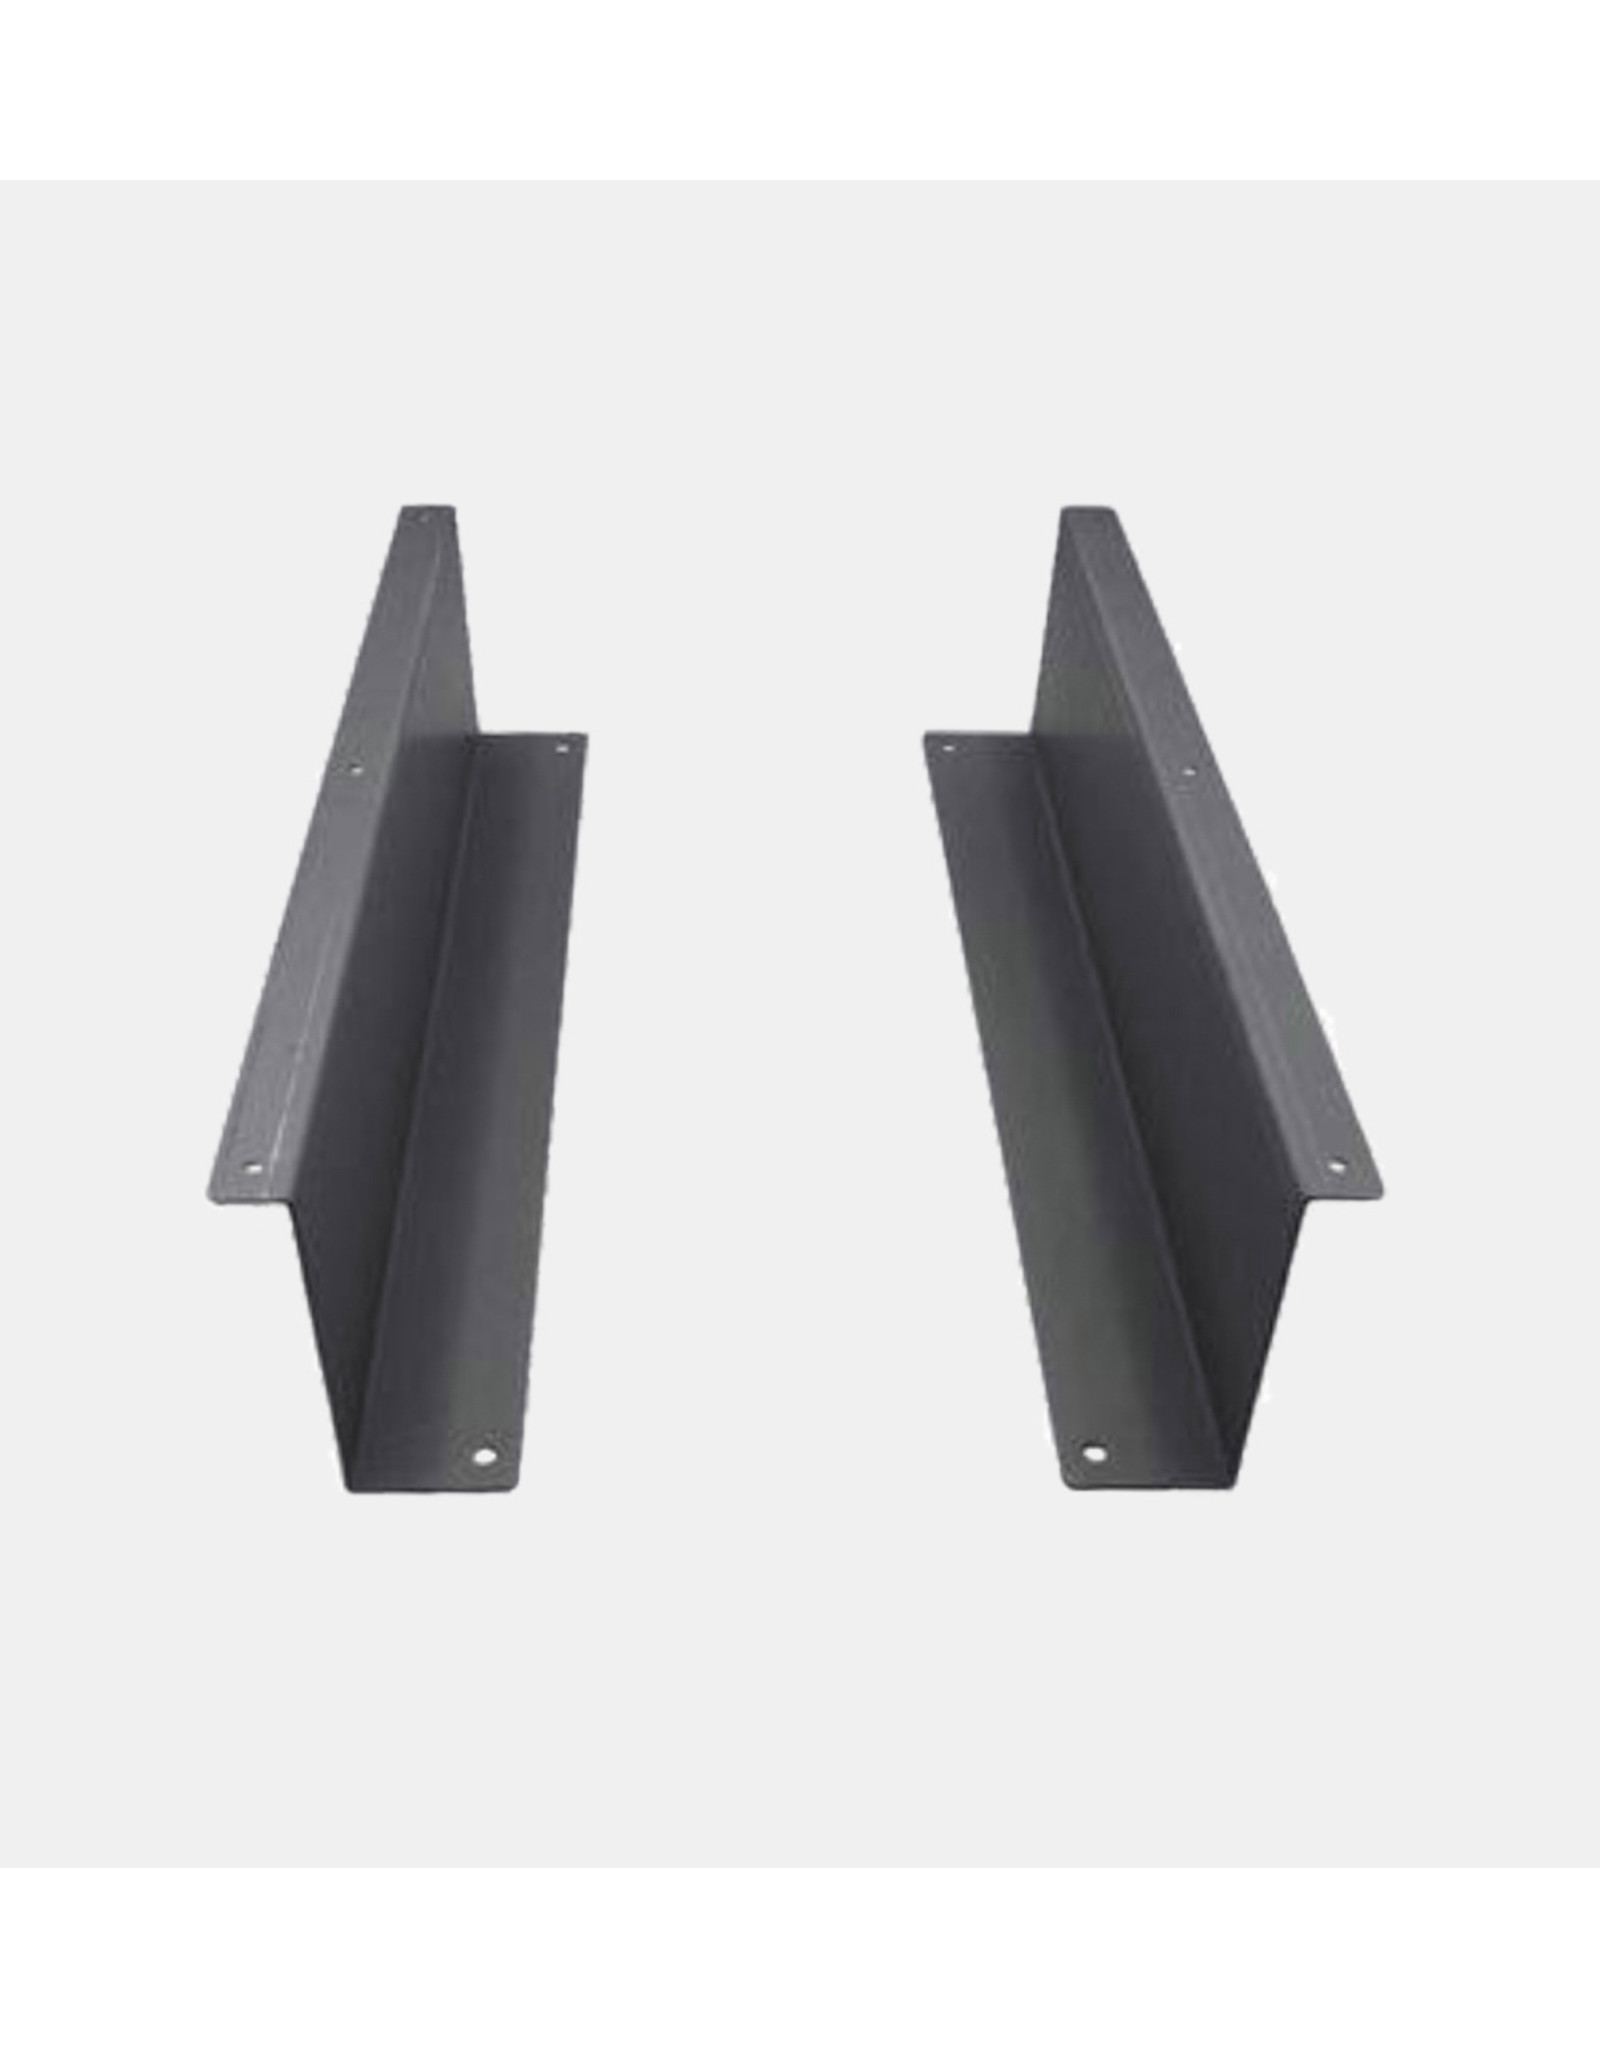 VPOS VPOS Under-counter Mounting Brackets for Cash Drawer